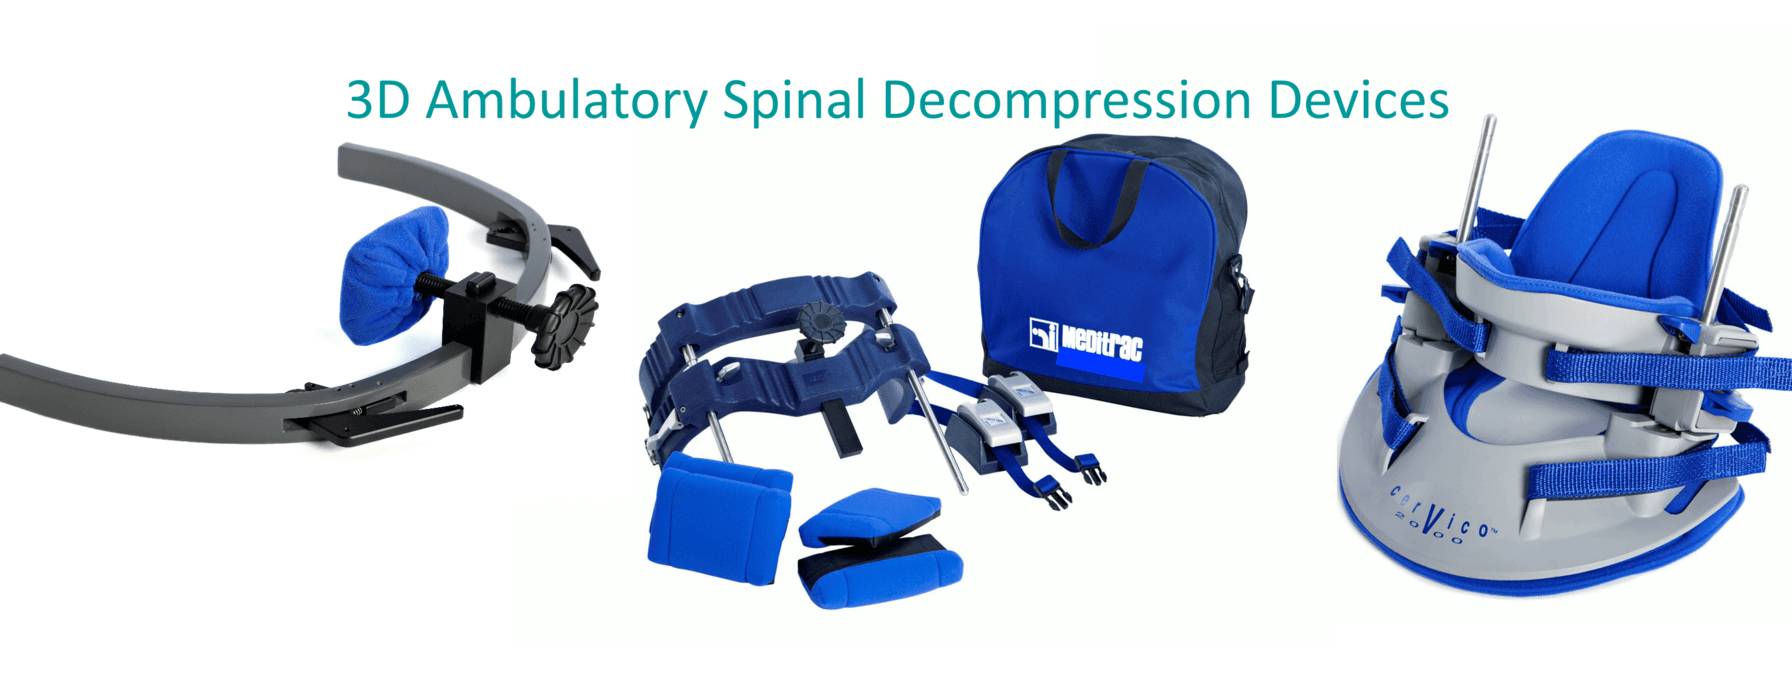 Meditrac 3D Ambulatory Spinal Decompression Devices, including the Vertetrac spinal decompression device, Cervico 2000 & DBS Scoliosis Rail Attachment, for neck & lower back pain relief, vertetrac disc bulges